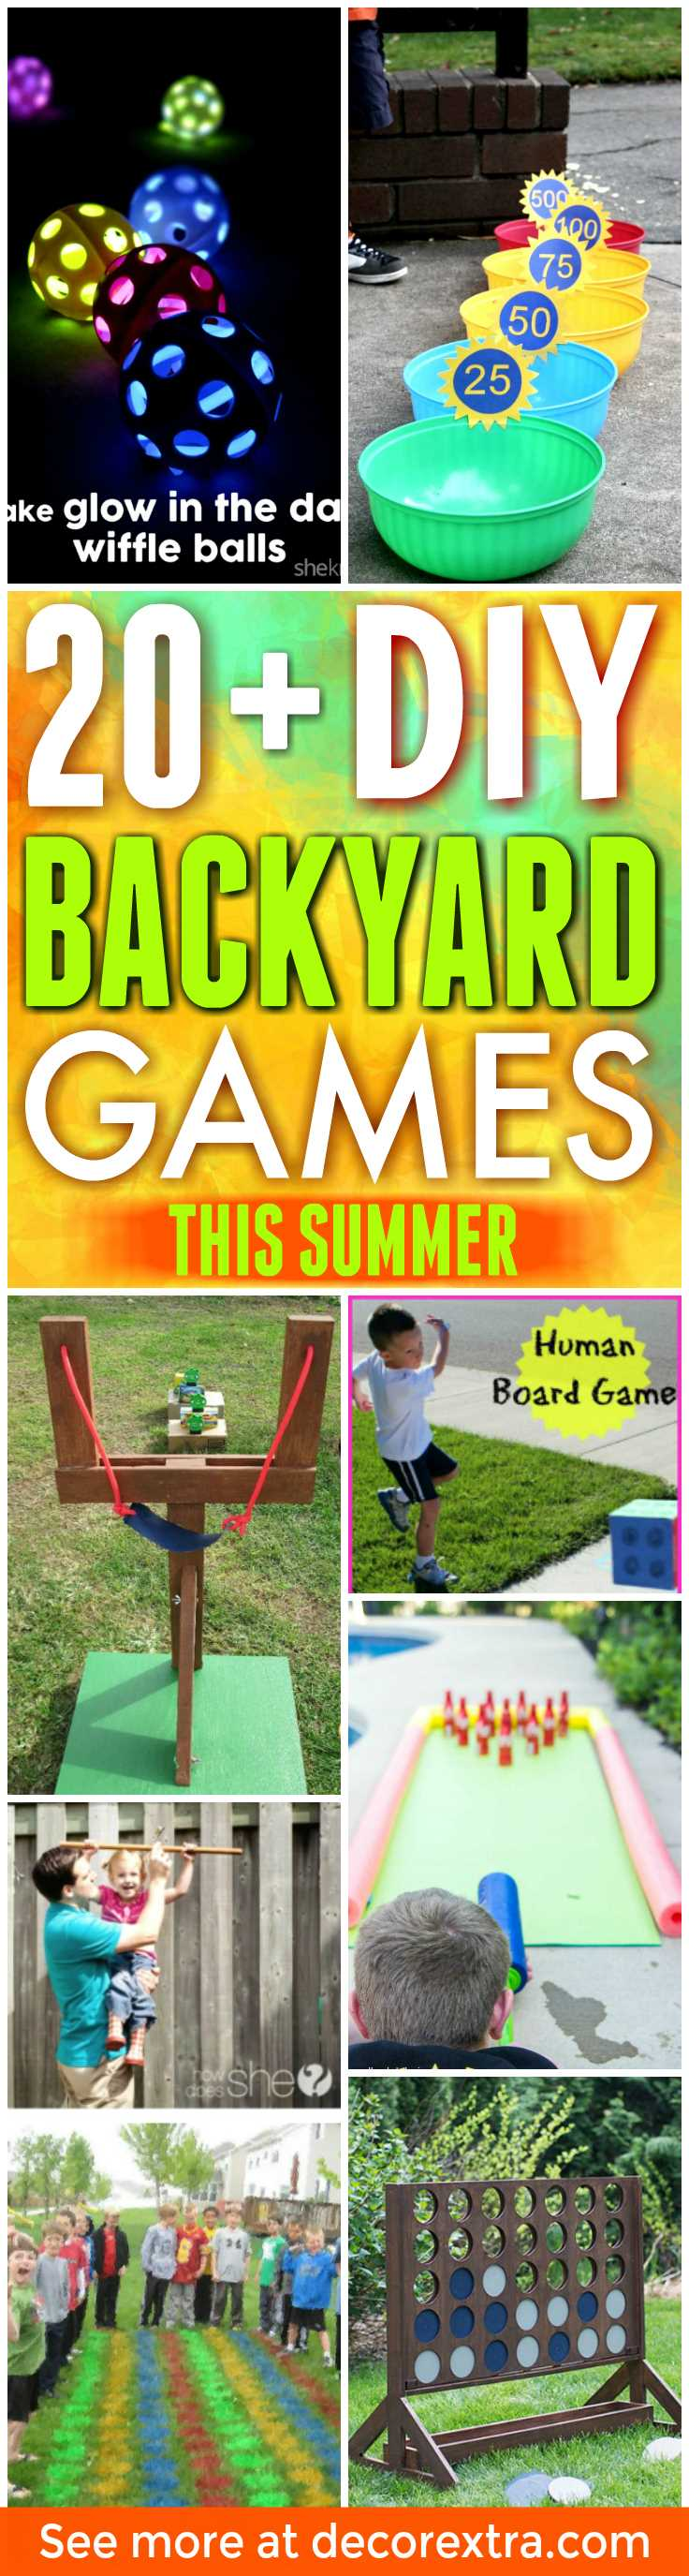 20 insanely fun diy backyard games perfect for summer decorextra